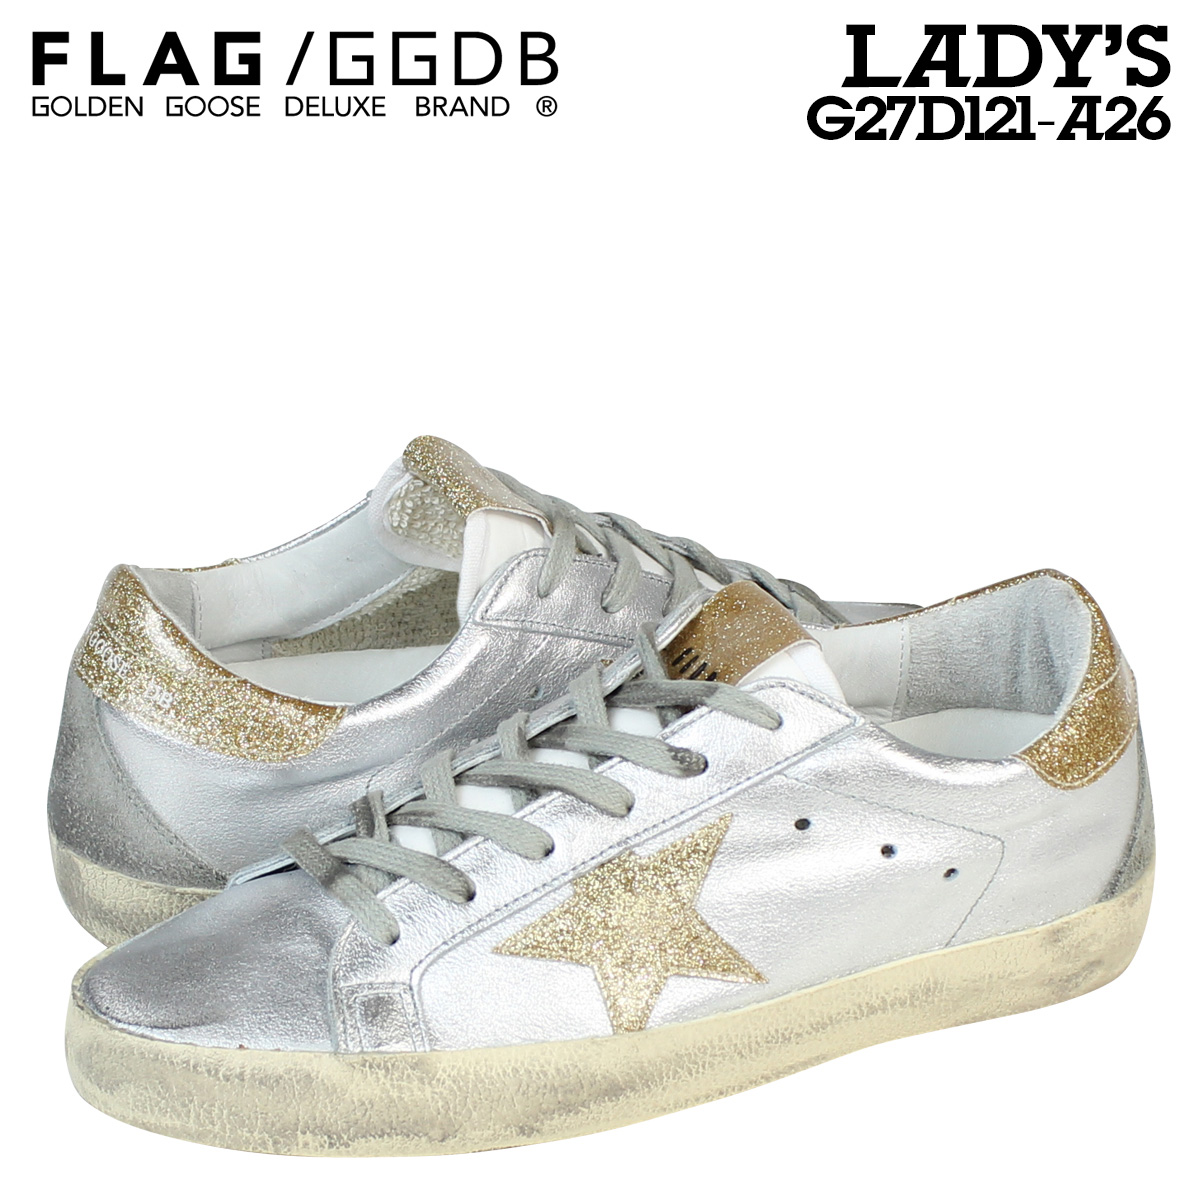 fcc2e5fc6ad7 Sugar Online Shop  This Golden Goose women s SUPER STAR sneaker superstar  MADE IN ITALY G27D121 A26 Silver Gold  10 23 new in stock